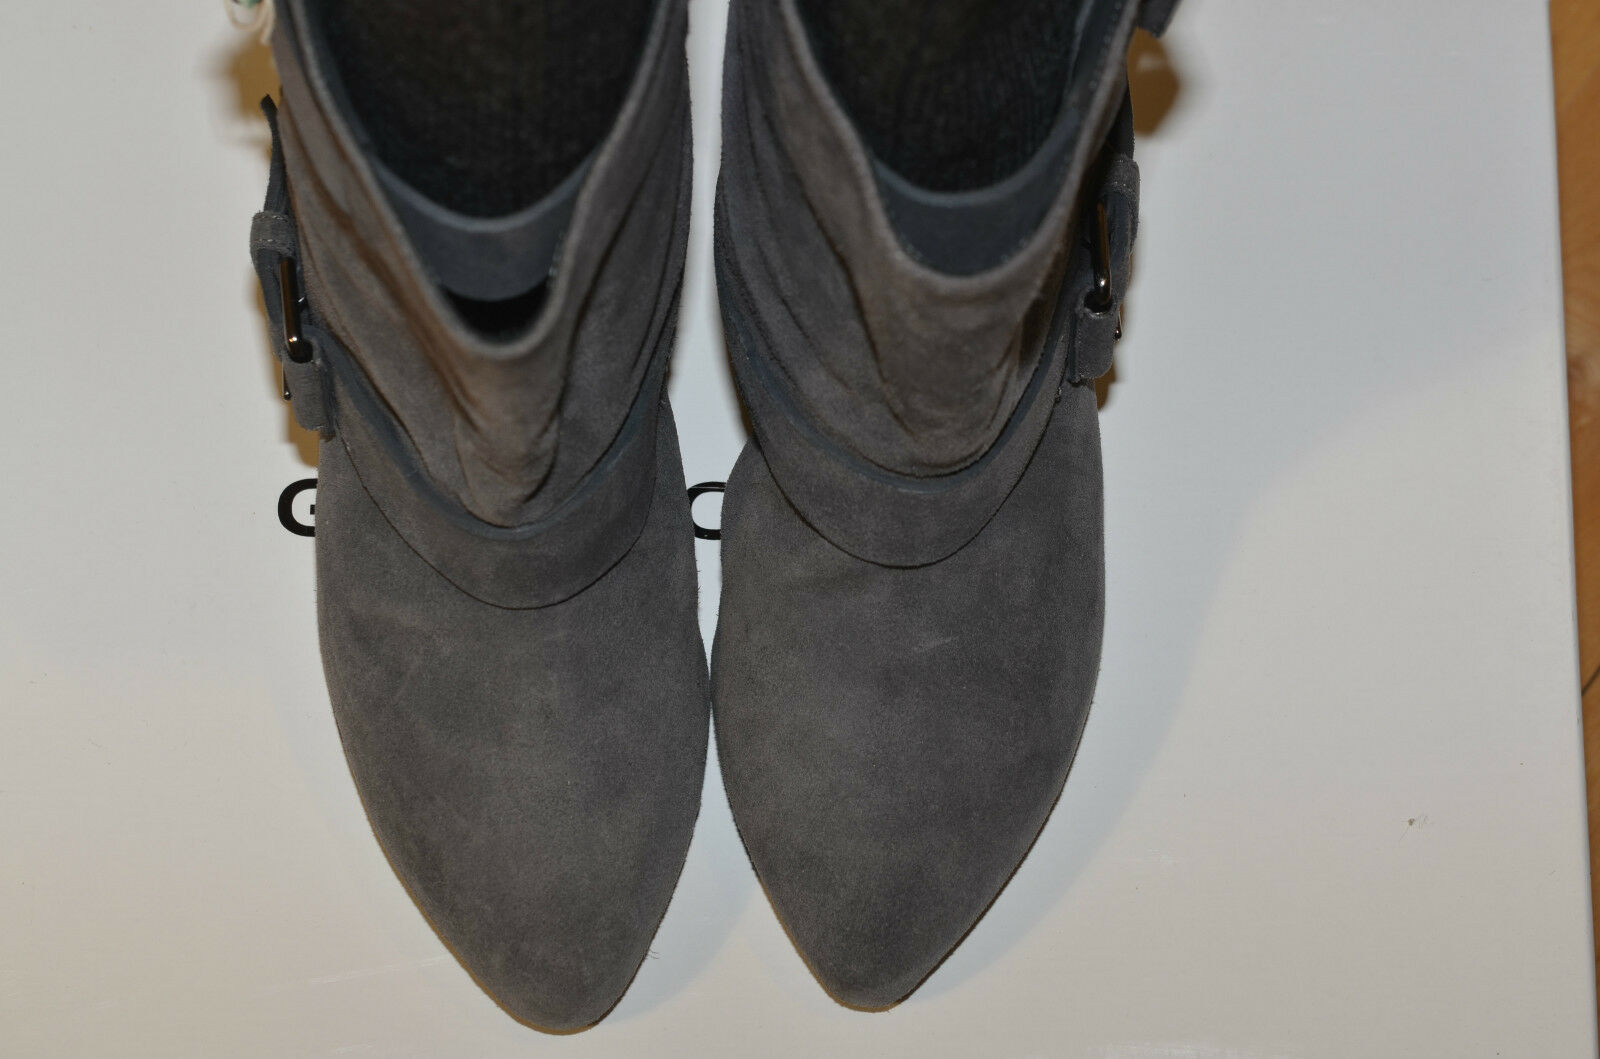 GIVENCHY BOOTS BOOTS BOOTS NW BOX SIZE 39.5 ff7065